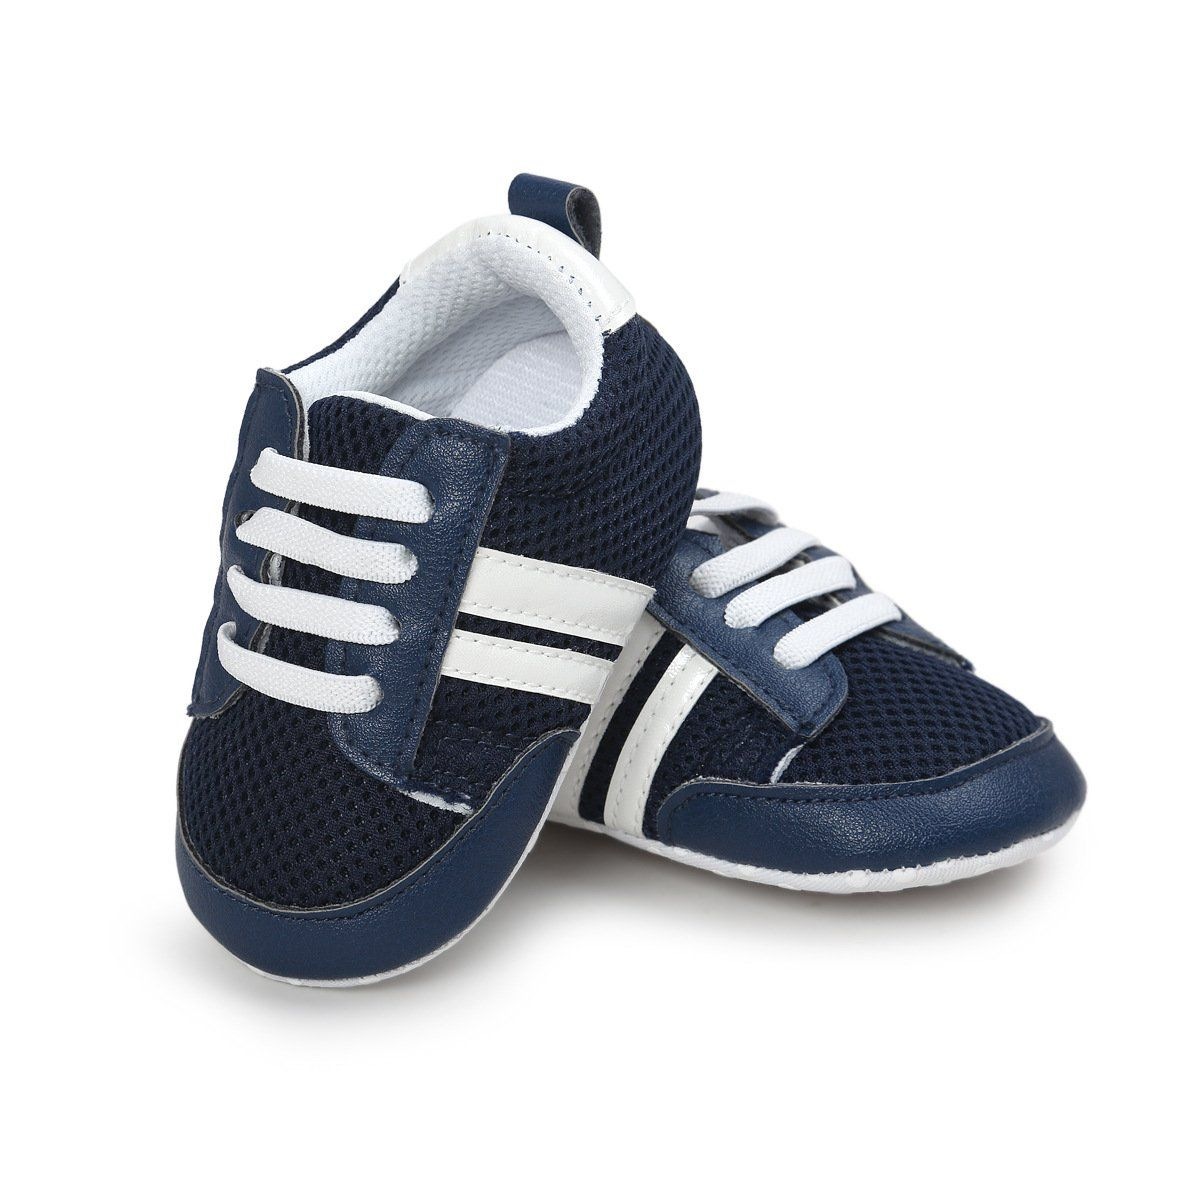 ea349626b89 Save Beautiful Air Mesh Baby Shoes - Infant Boys Girls Summer Net Sneakers  Crib Shoes (5.12inches(12-18months)